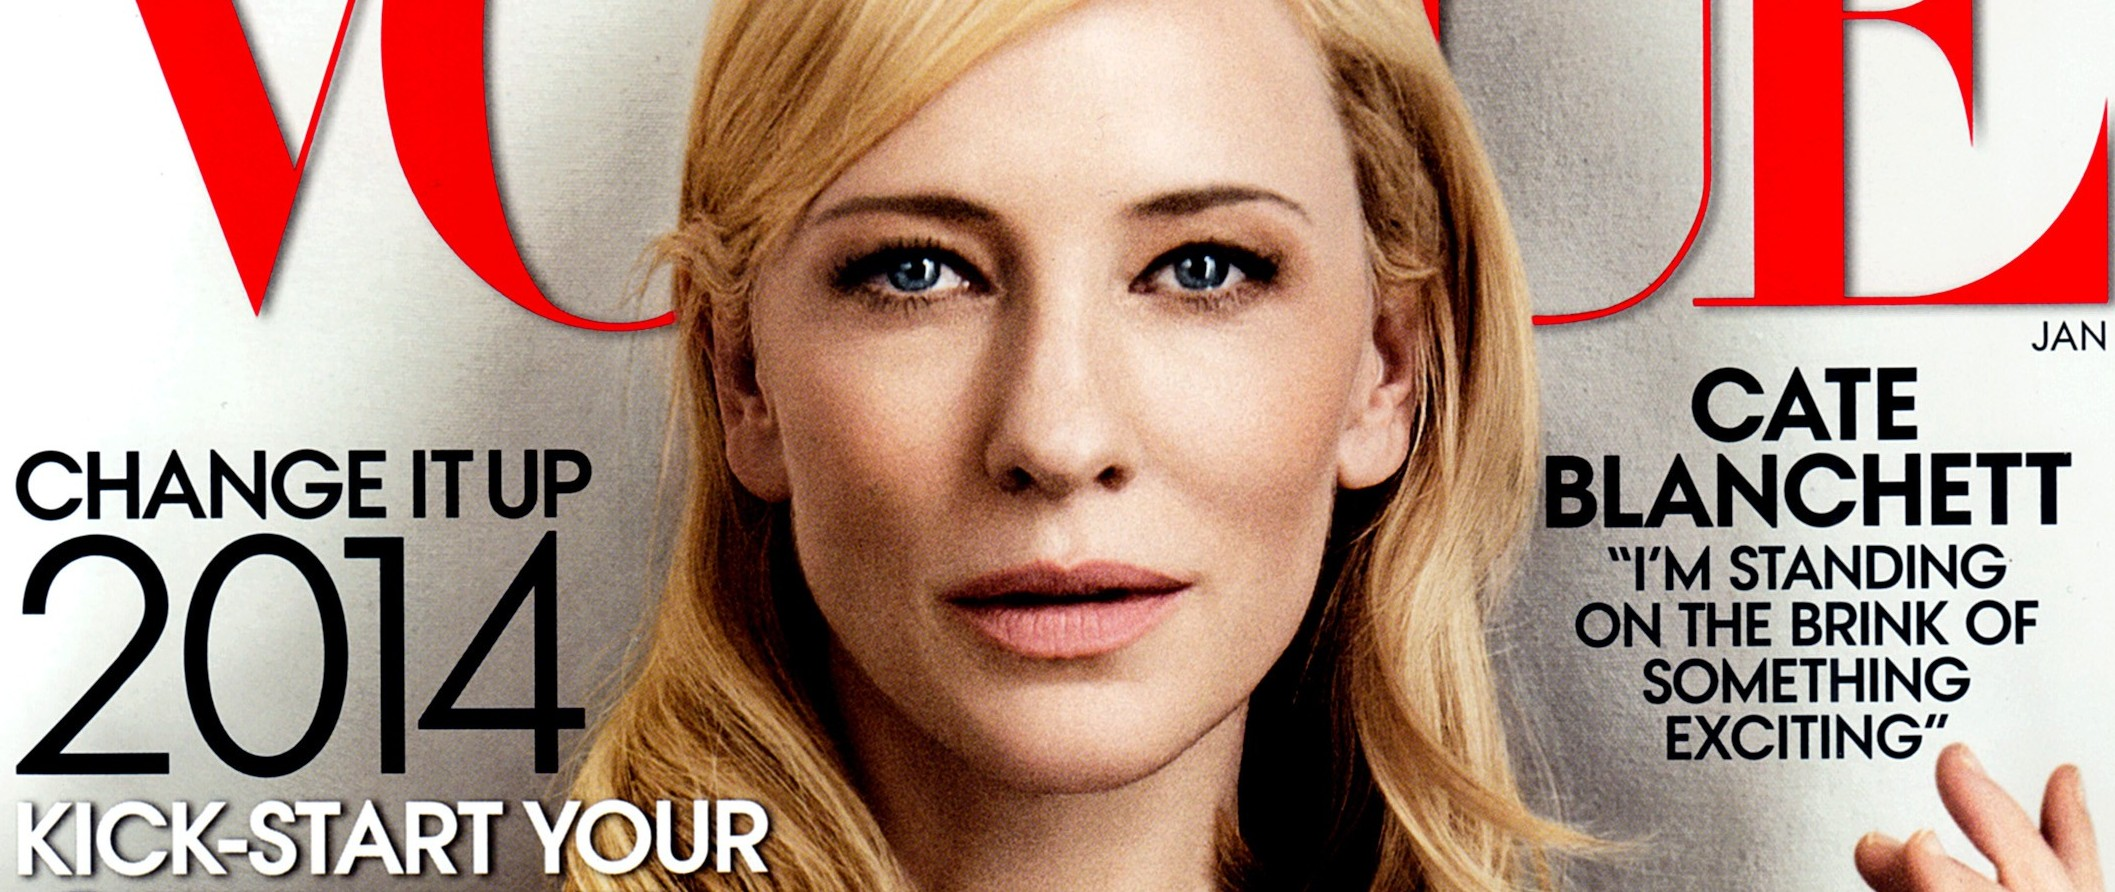 Cate Blanchett covers Vogue US January 2014